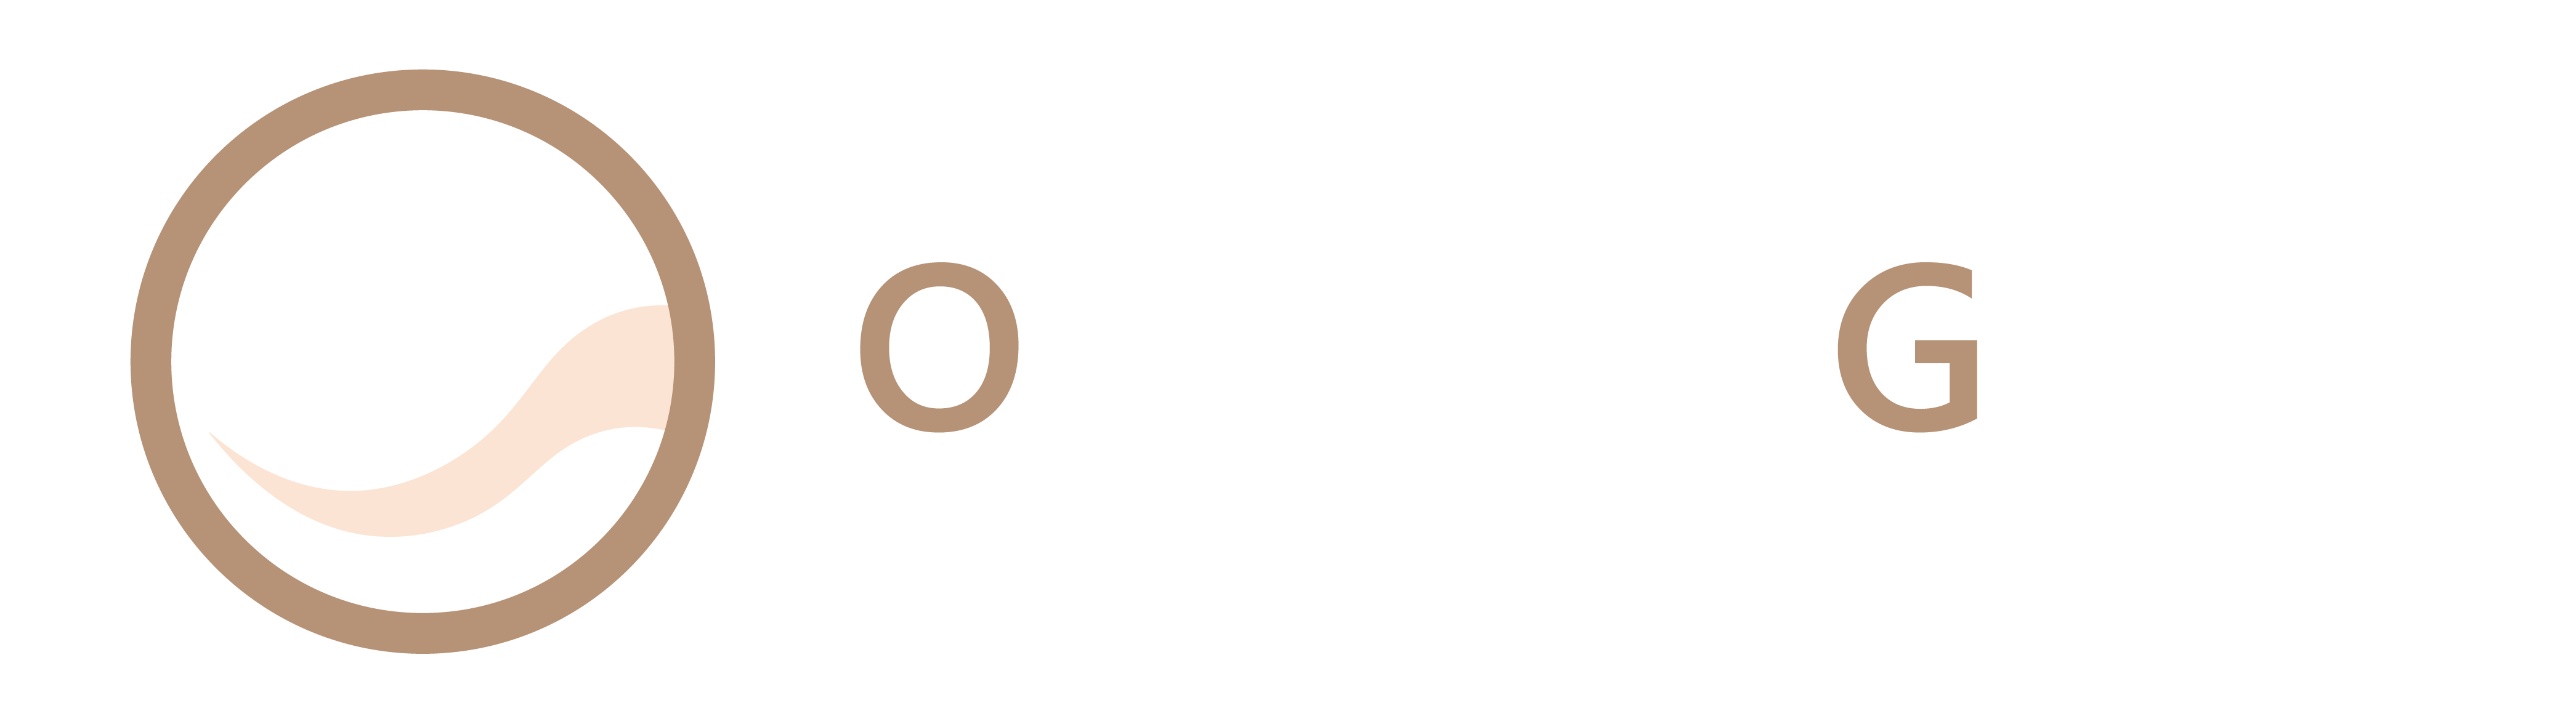 Optimus Group